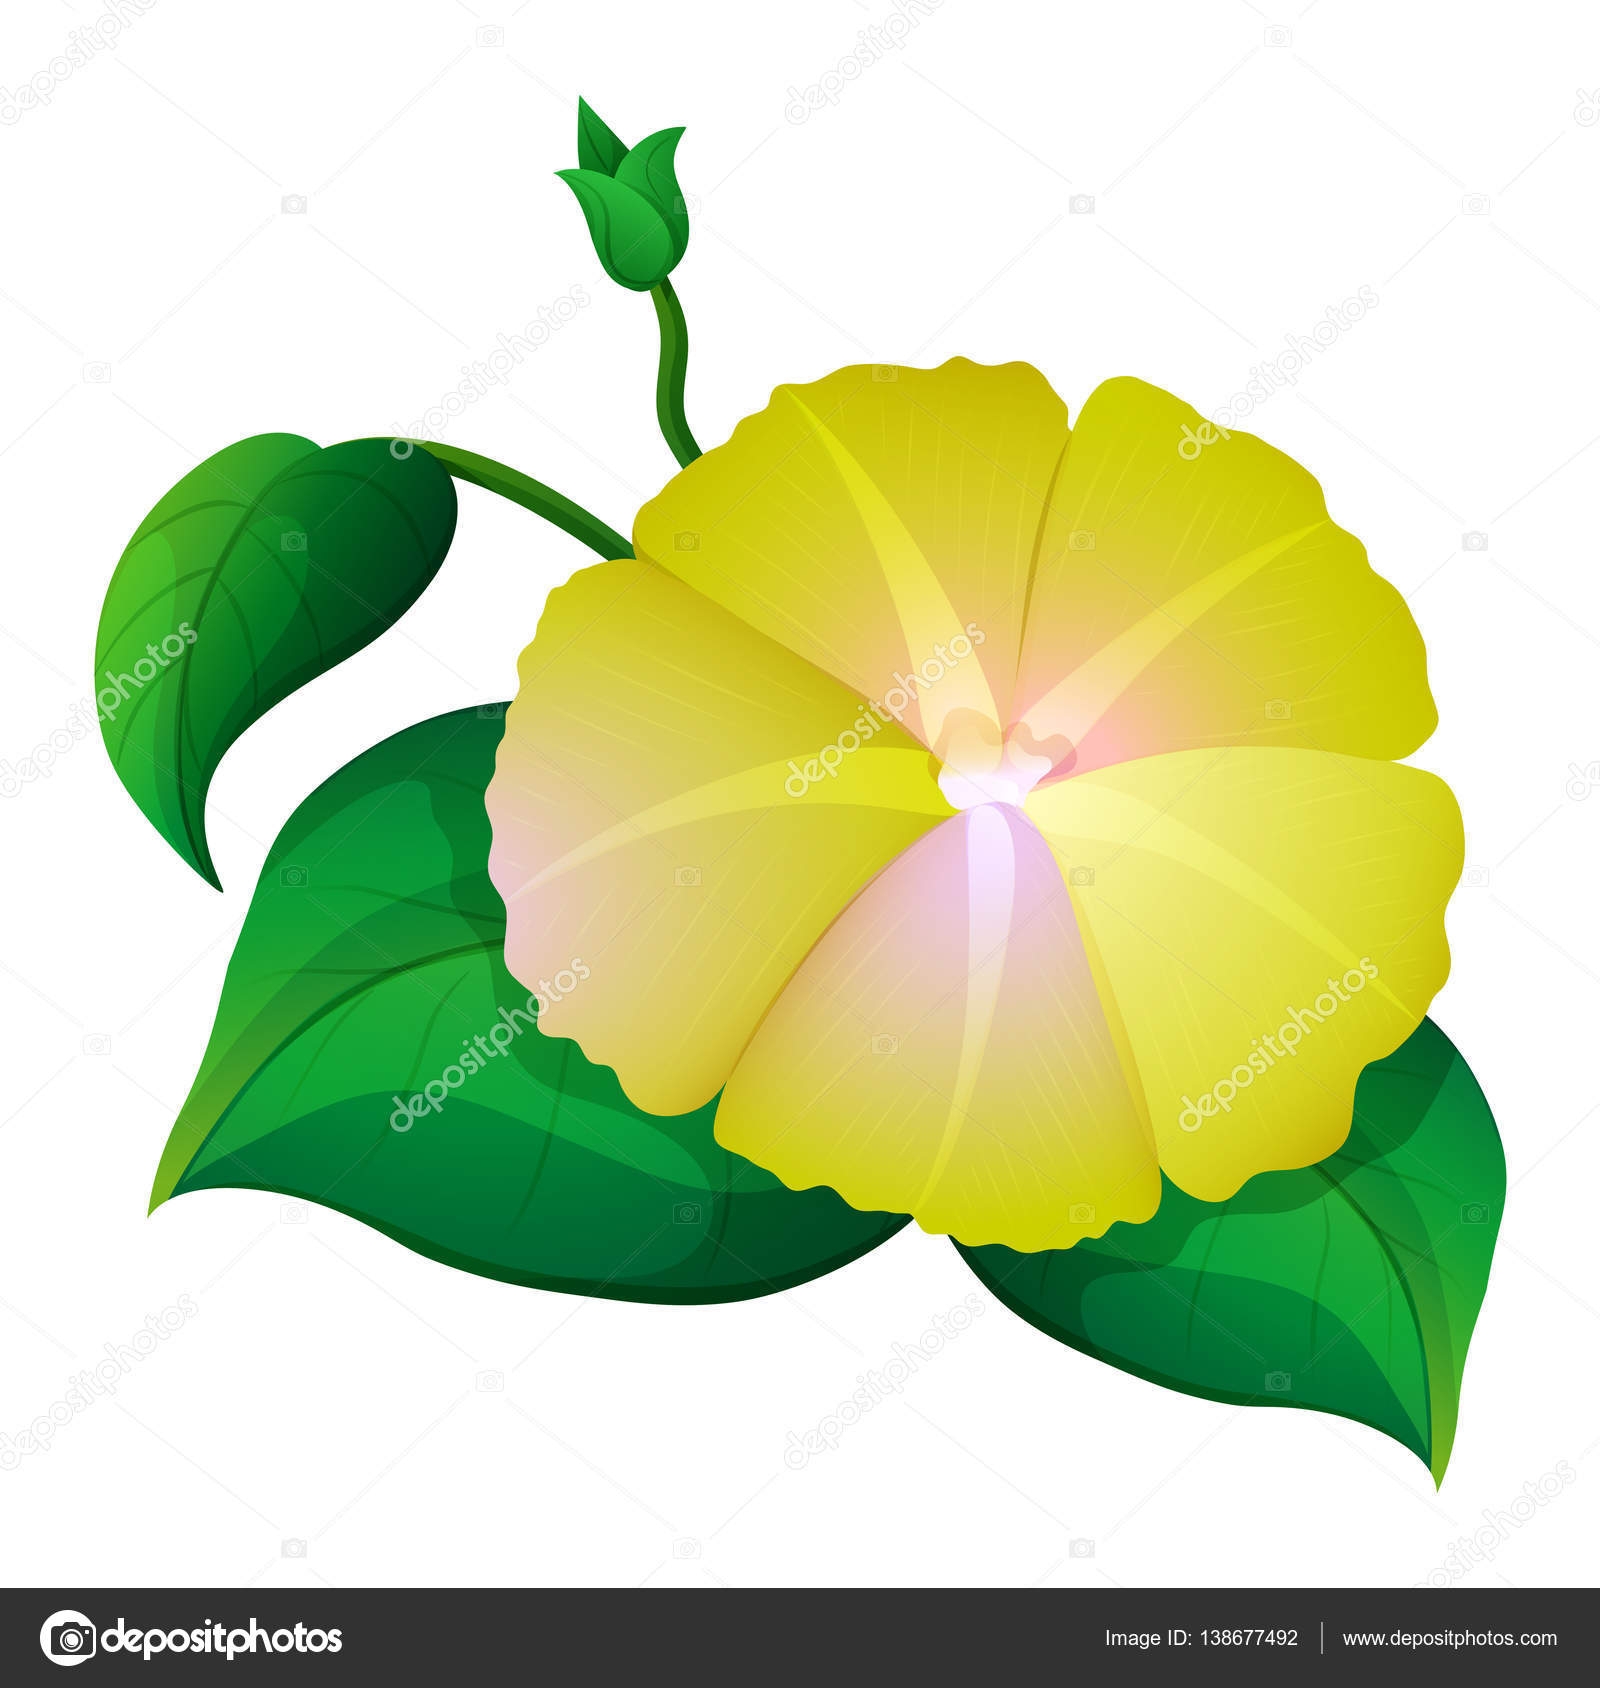 Yellow morning glory flower on white background stock vector yellow morning glory flower on white background stock vector mightylinksfo